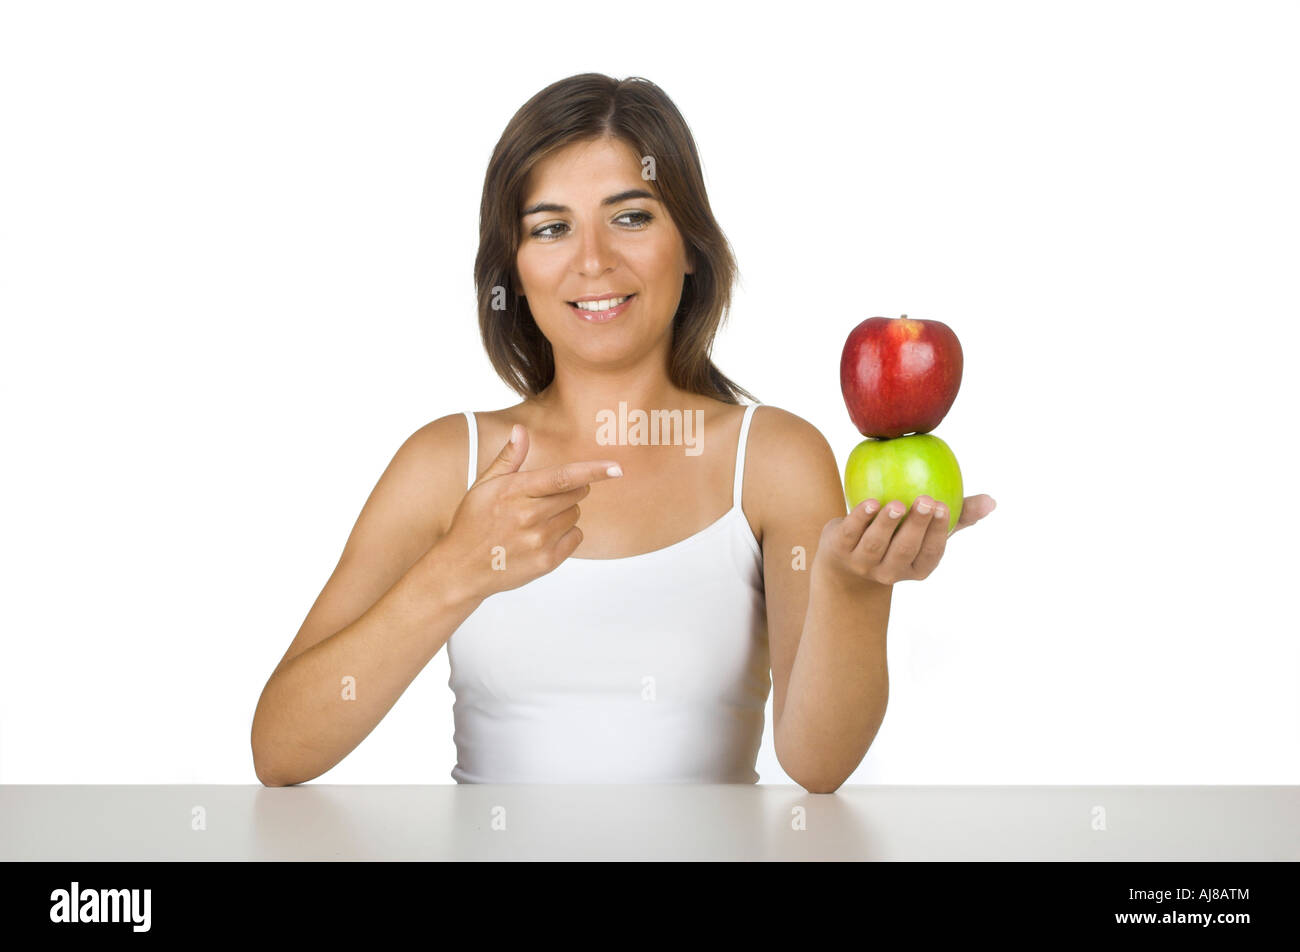 Beautiful young woman holding a green and a red apple - Stock Image